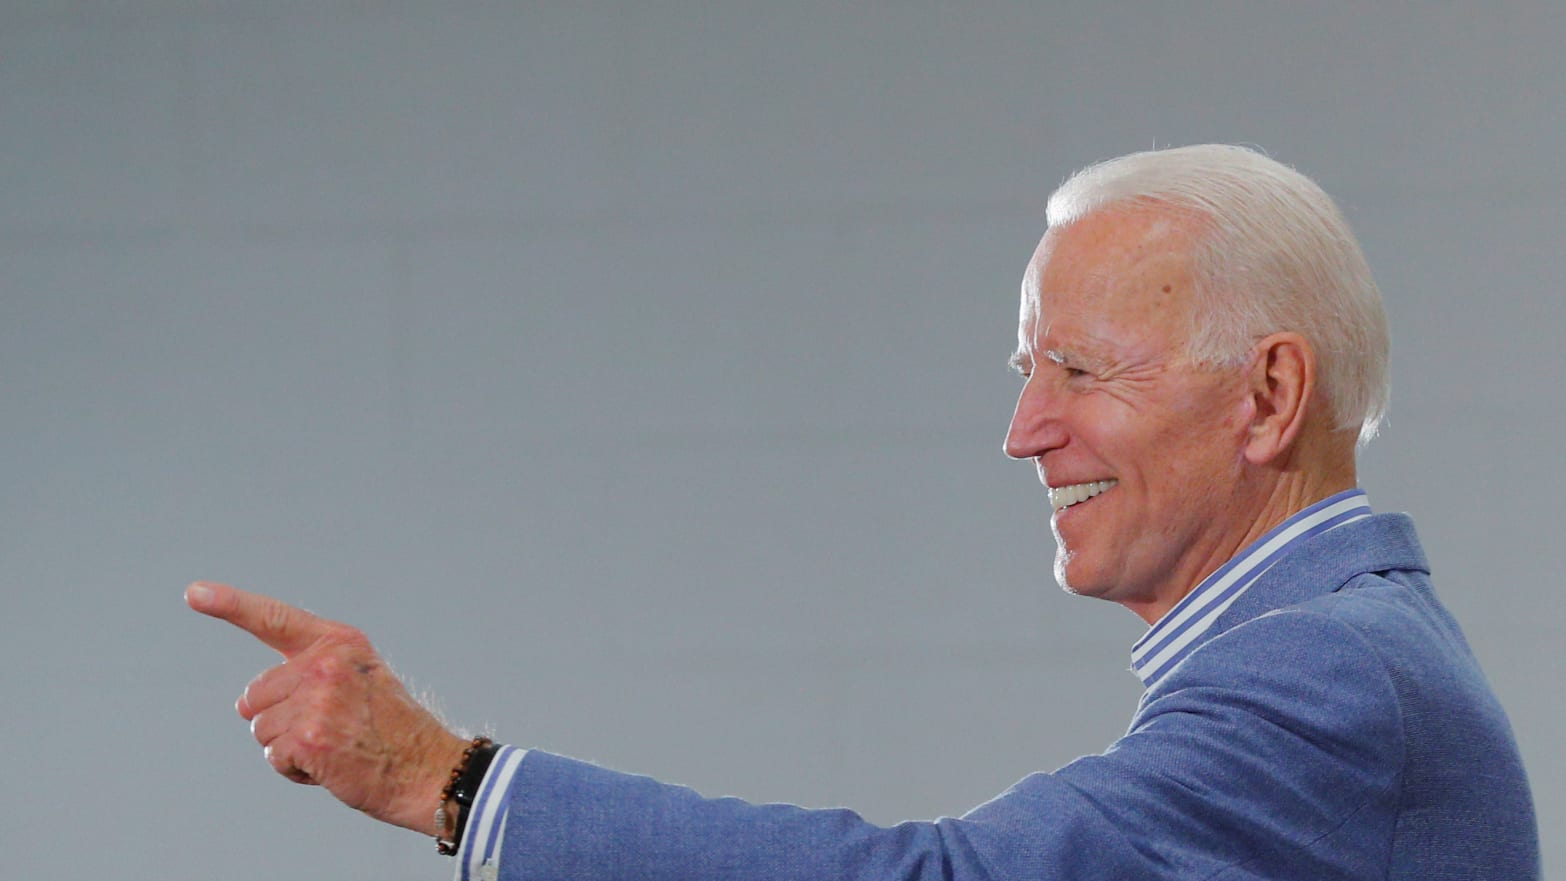 Here's Who Will and Won't Get to Face Joe Biden in the First 2020 Democratic Debate